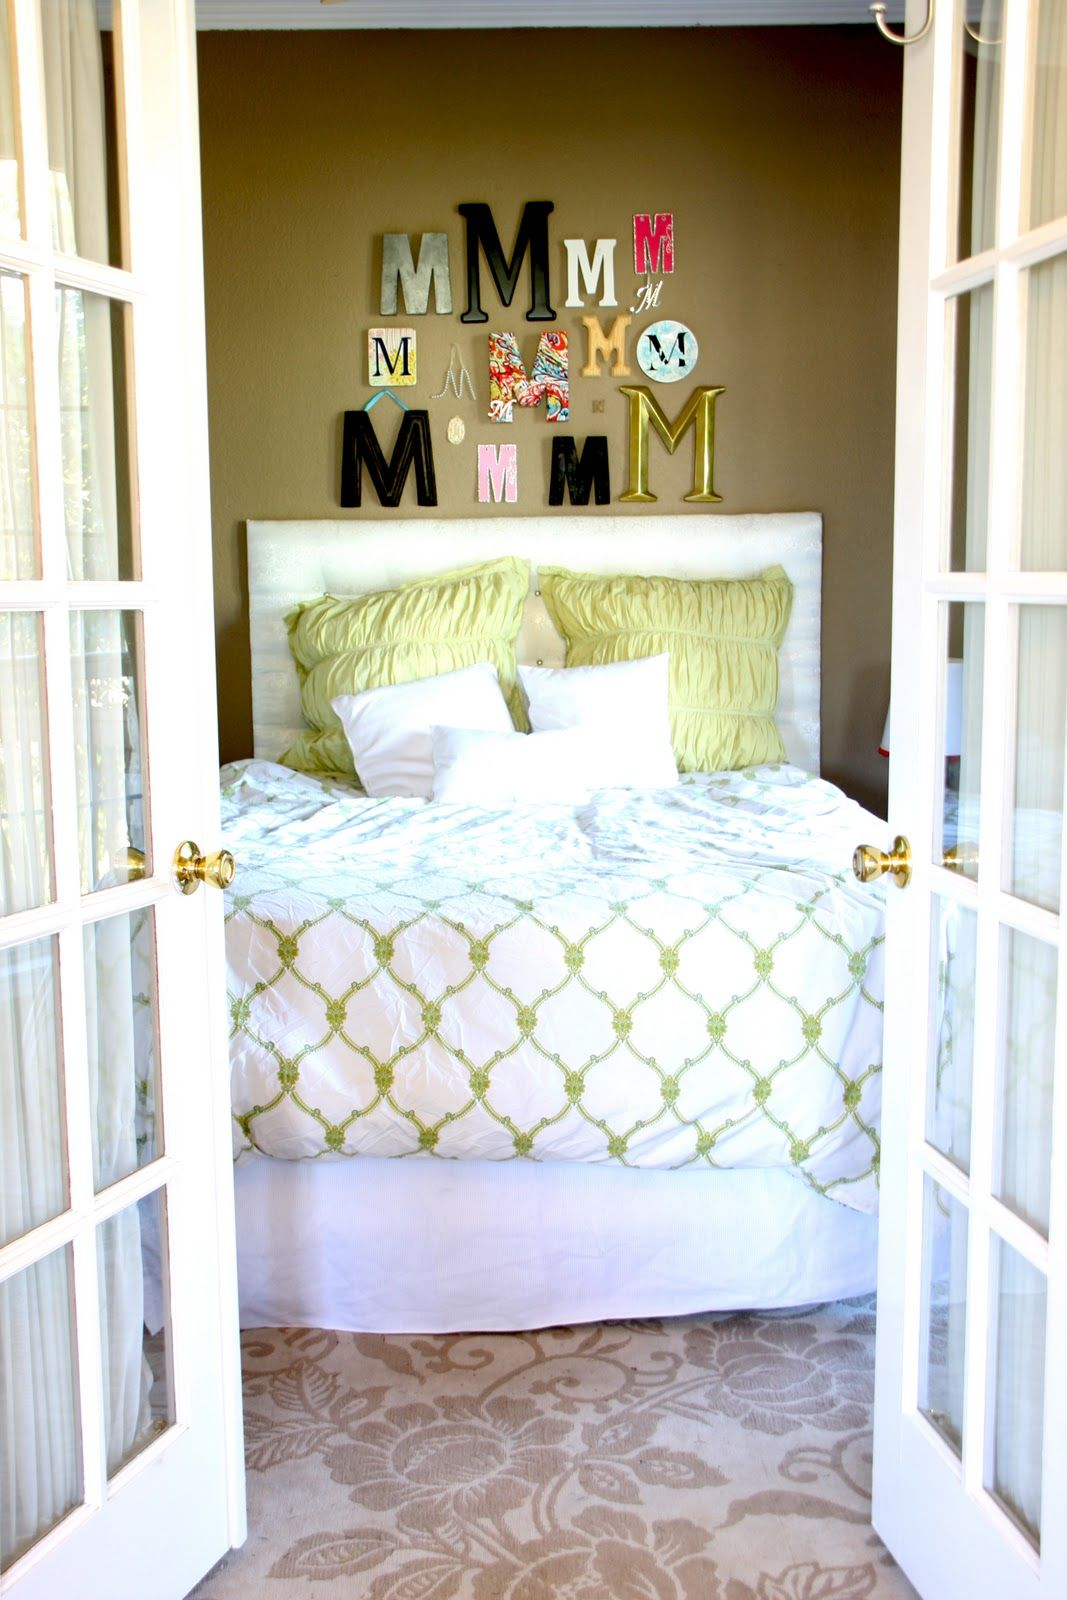 green room green pillows french doors initials. & green room green pillows french doors initials. | Homey ...